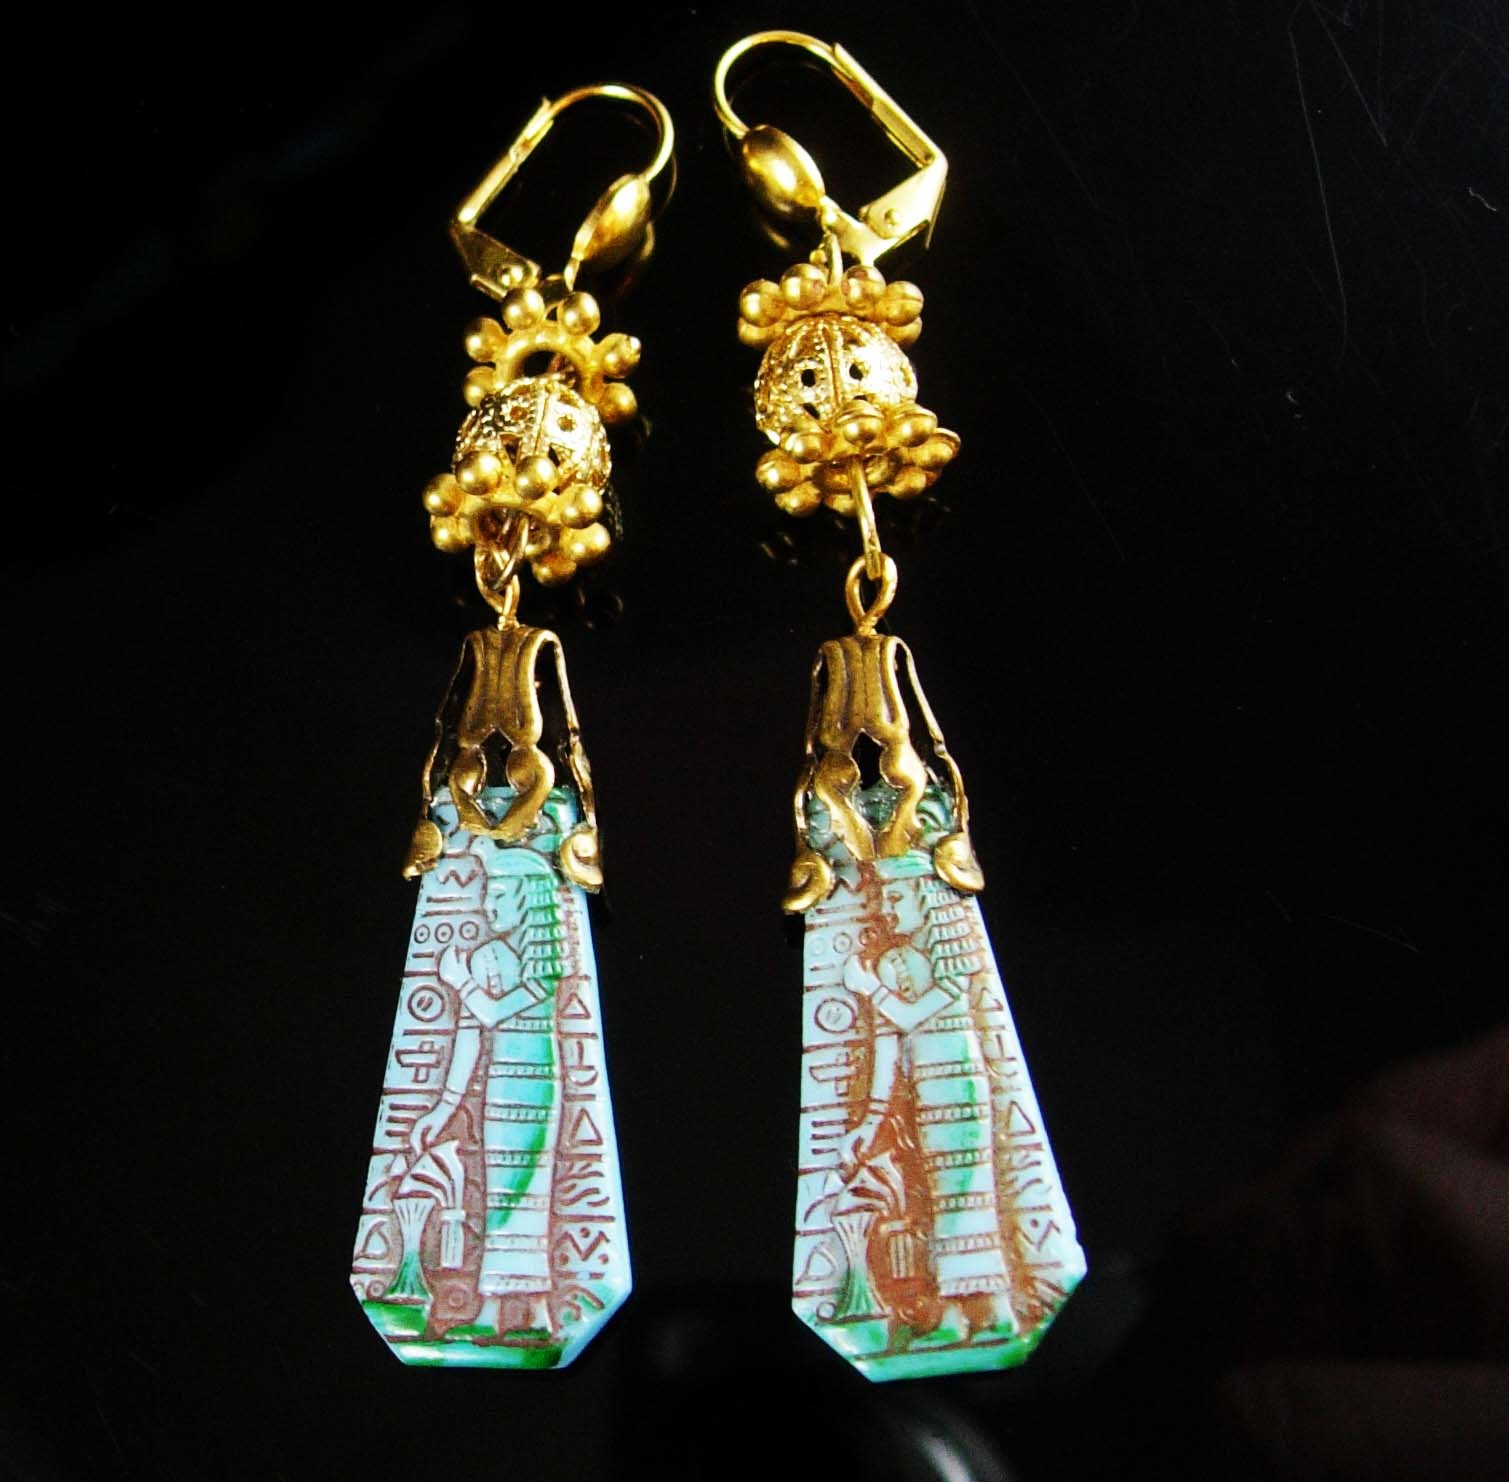 Vintage Egyptian Necklace Chandelier Earrings Vintage Art